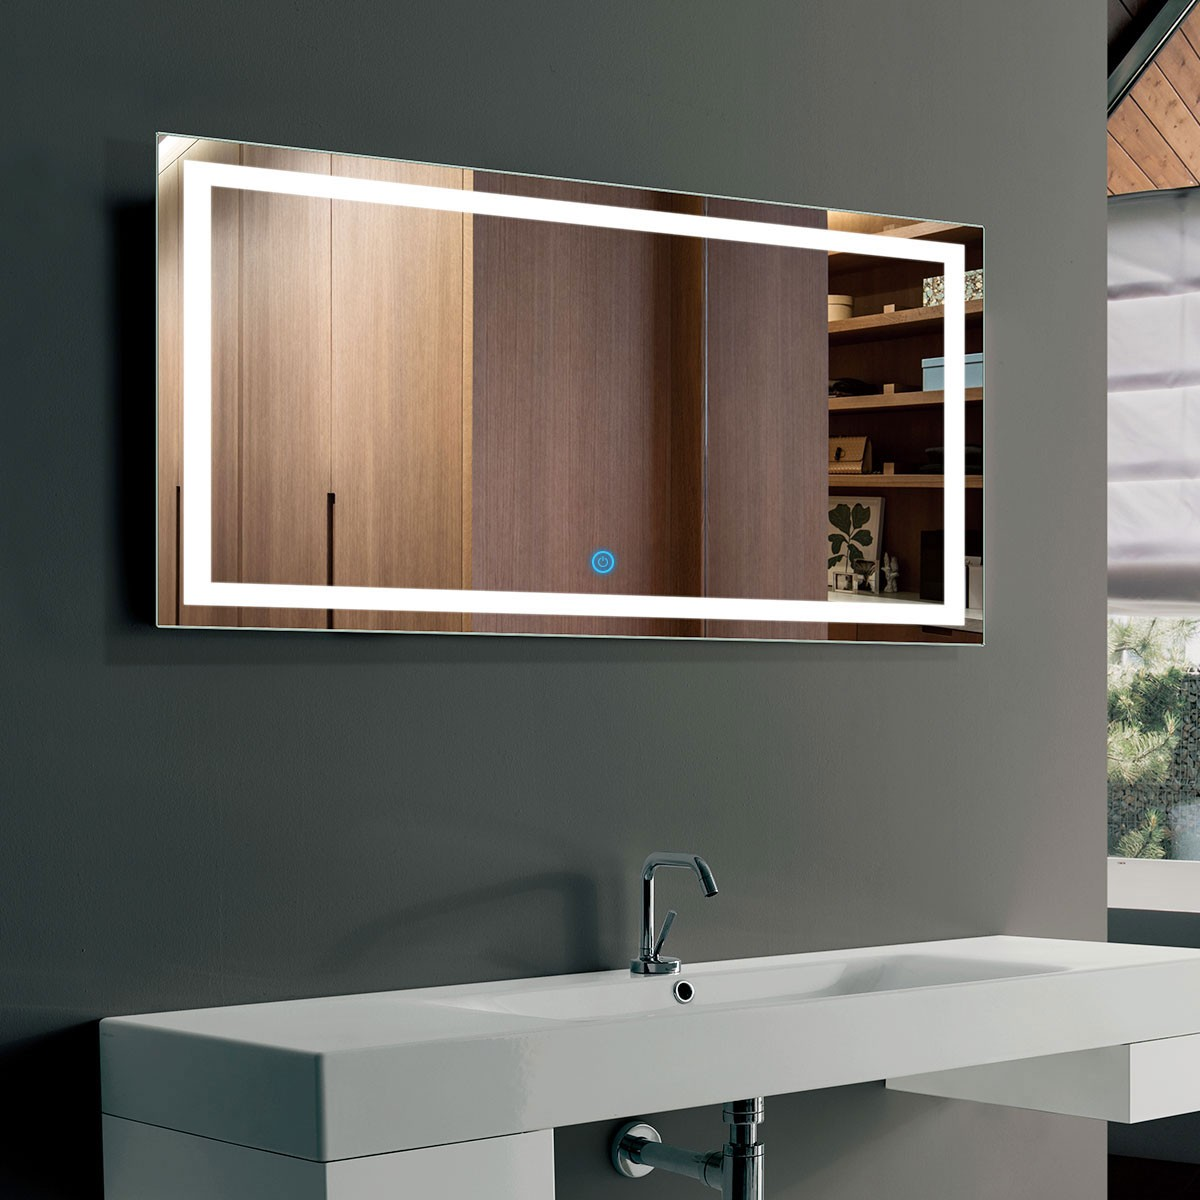 40 x 24 In Horizontal LED Bathroom Mirror with Touch Button (DK-OD-CK010-G)